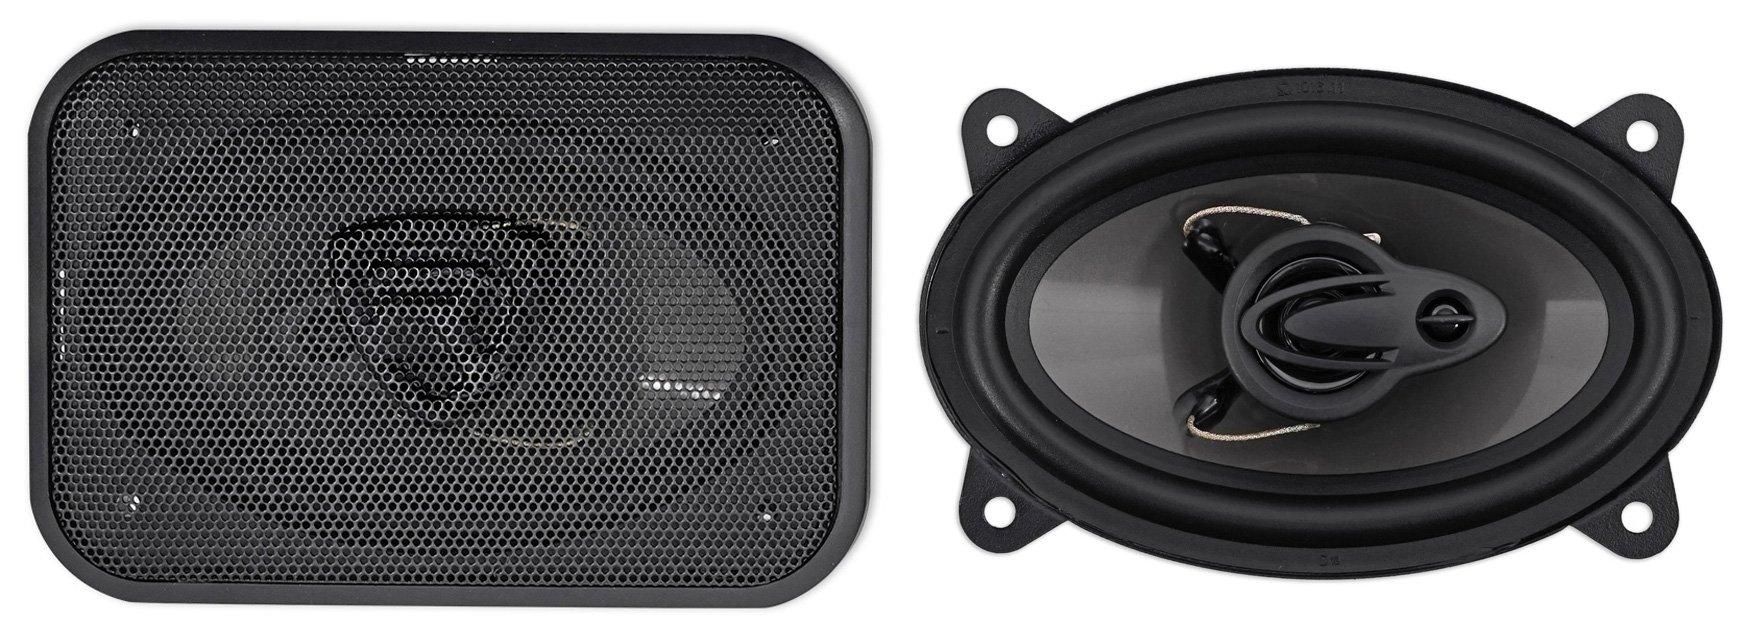 Pair Rockville RV46.3A 4x6'' 3-Way Car Speakers 500 Watts/70 Watts RMS CEA Rated by Rockville (Image #1)